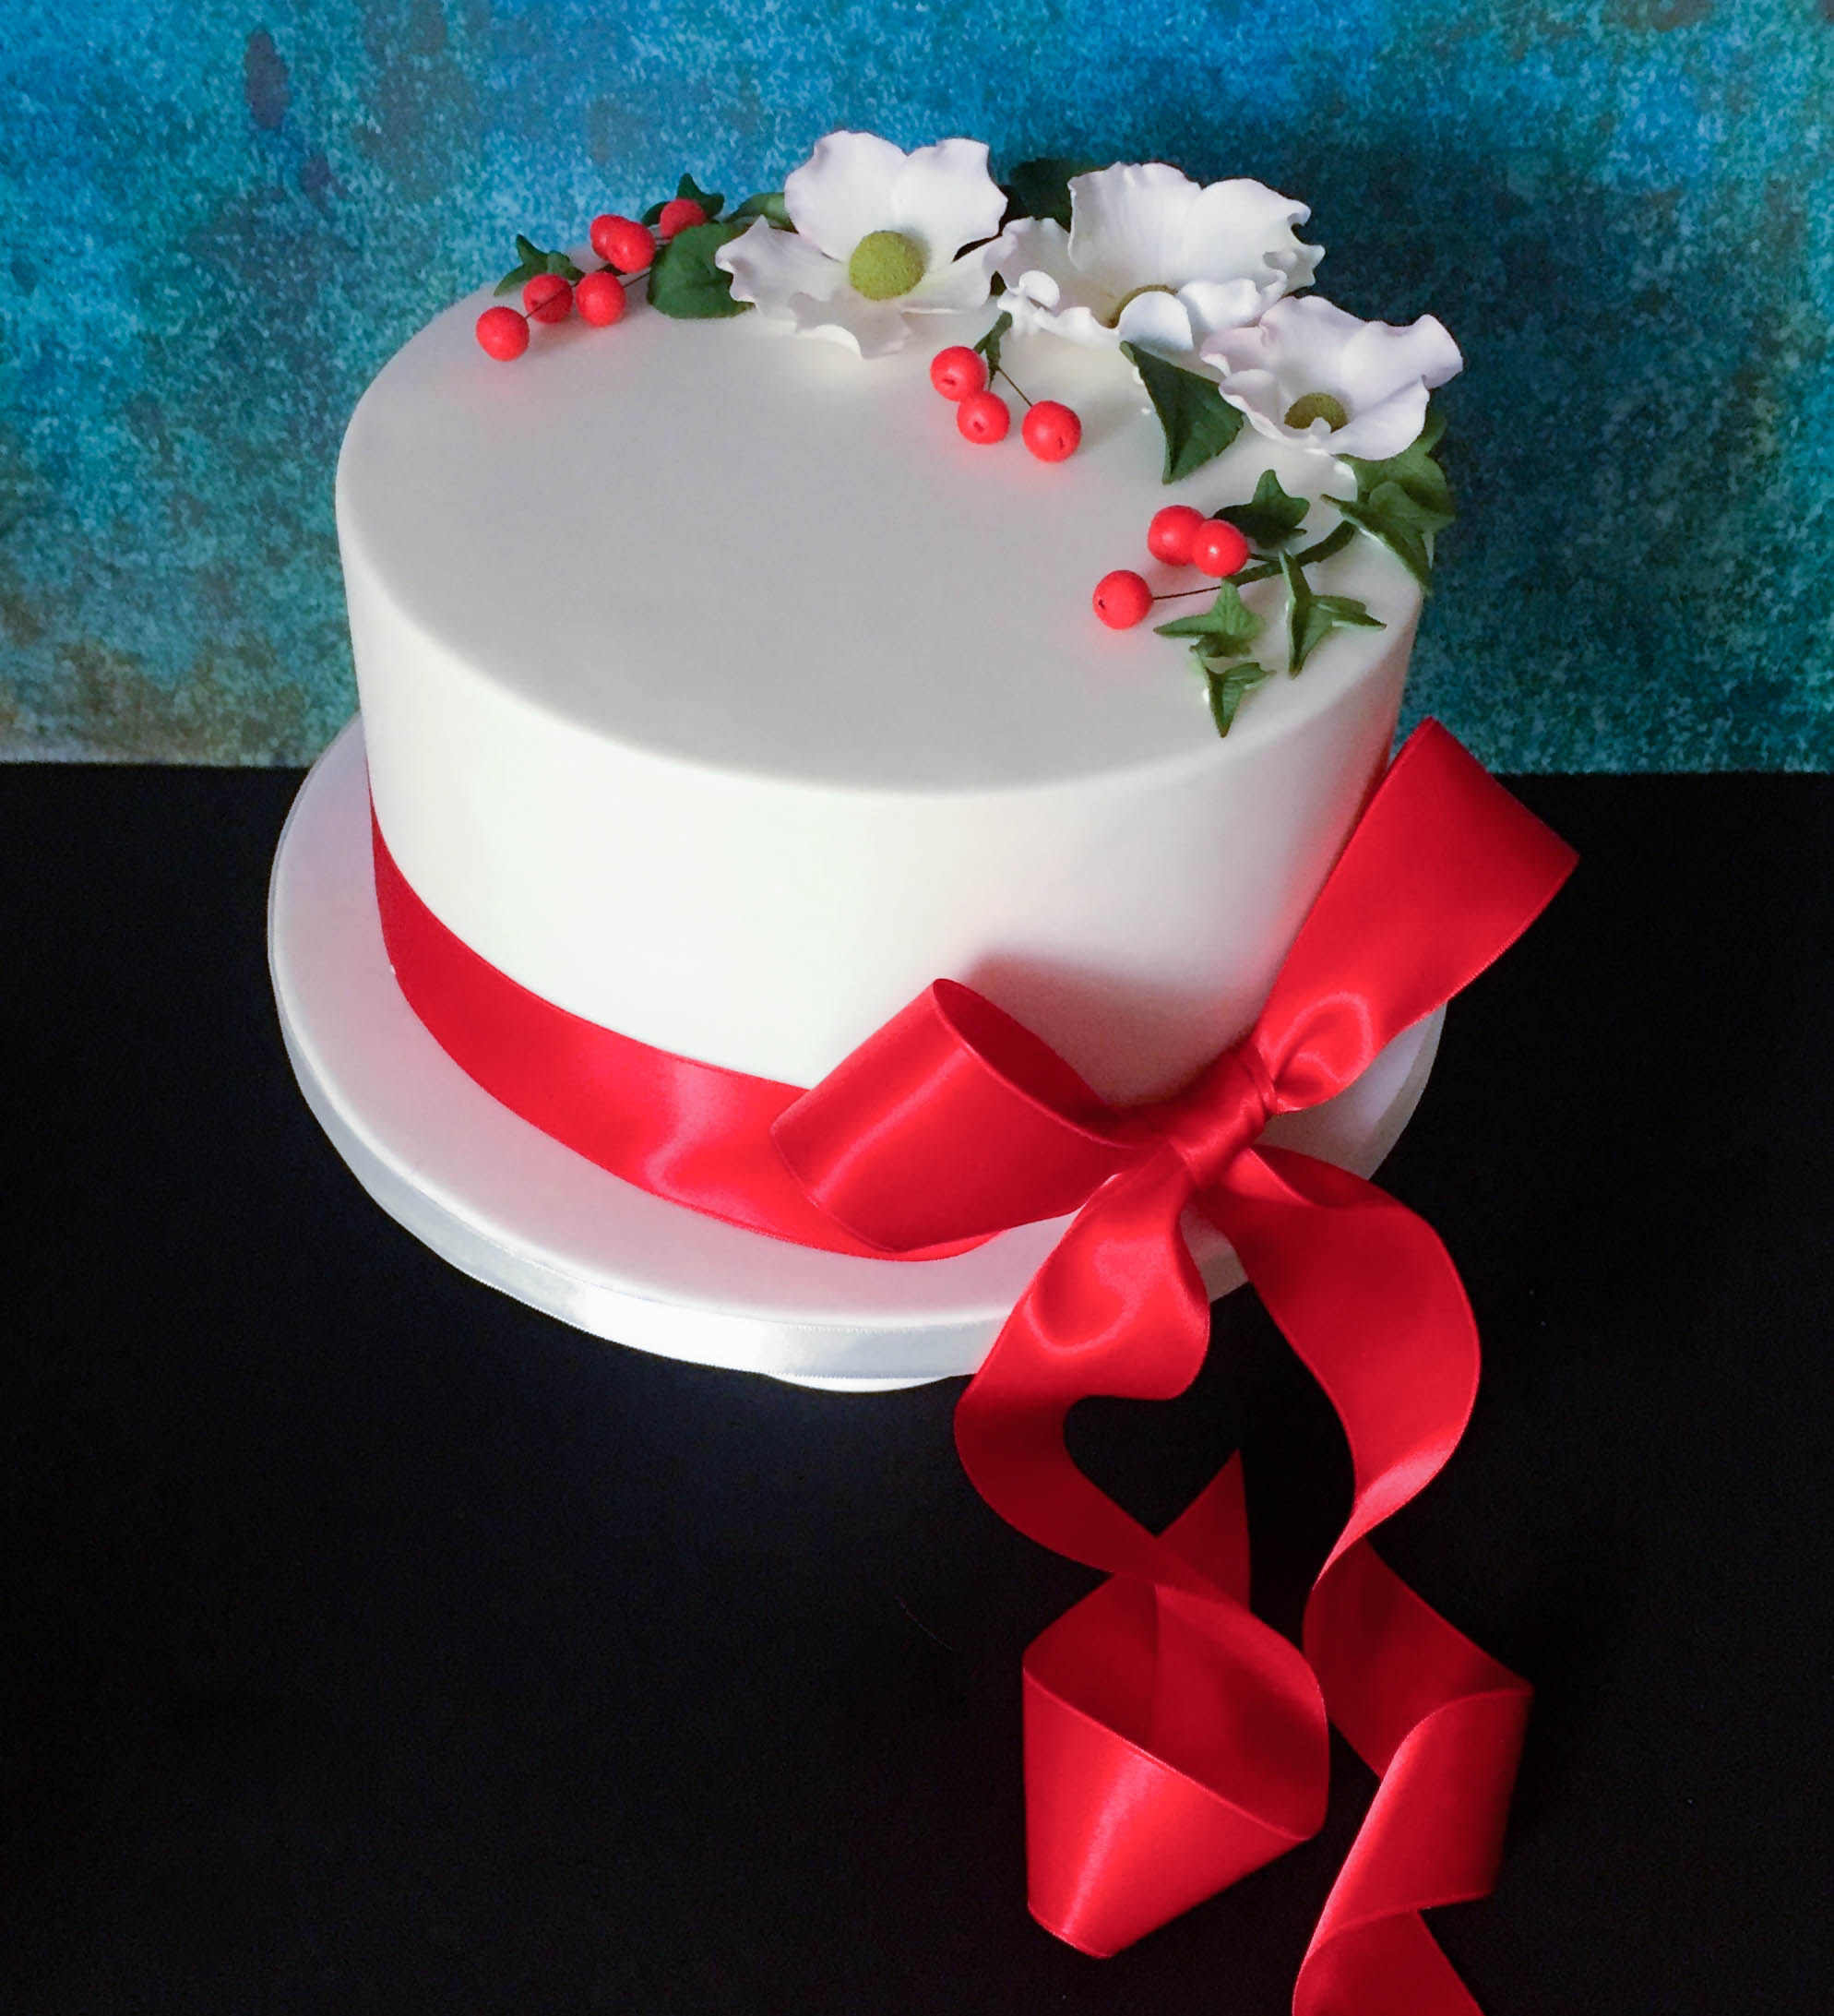 Cake Decorating Holidays Uk : All about Christmas Cakes Tickets, Multiple Dates Eventbrite